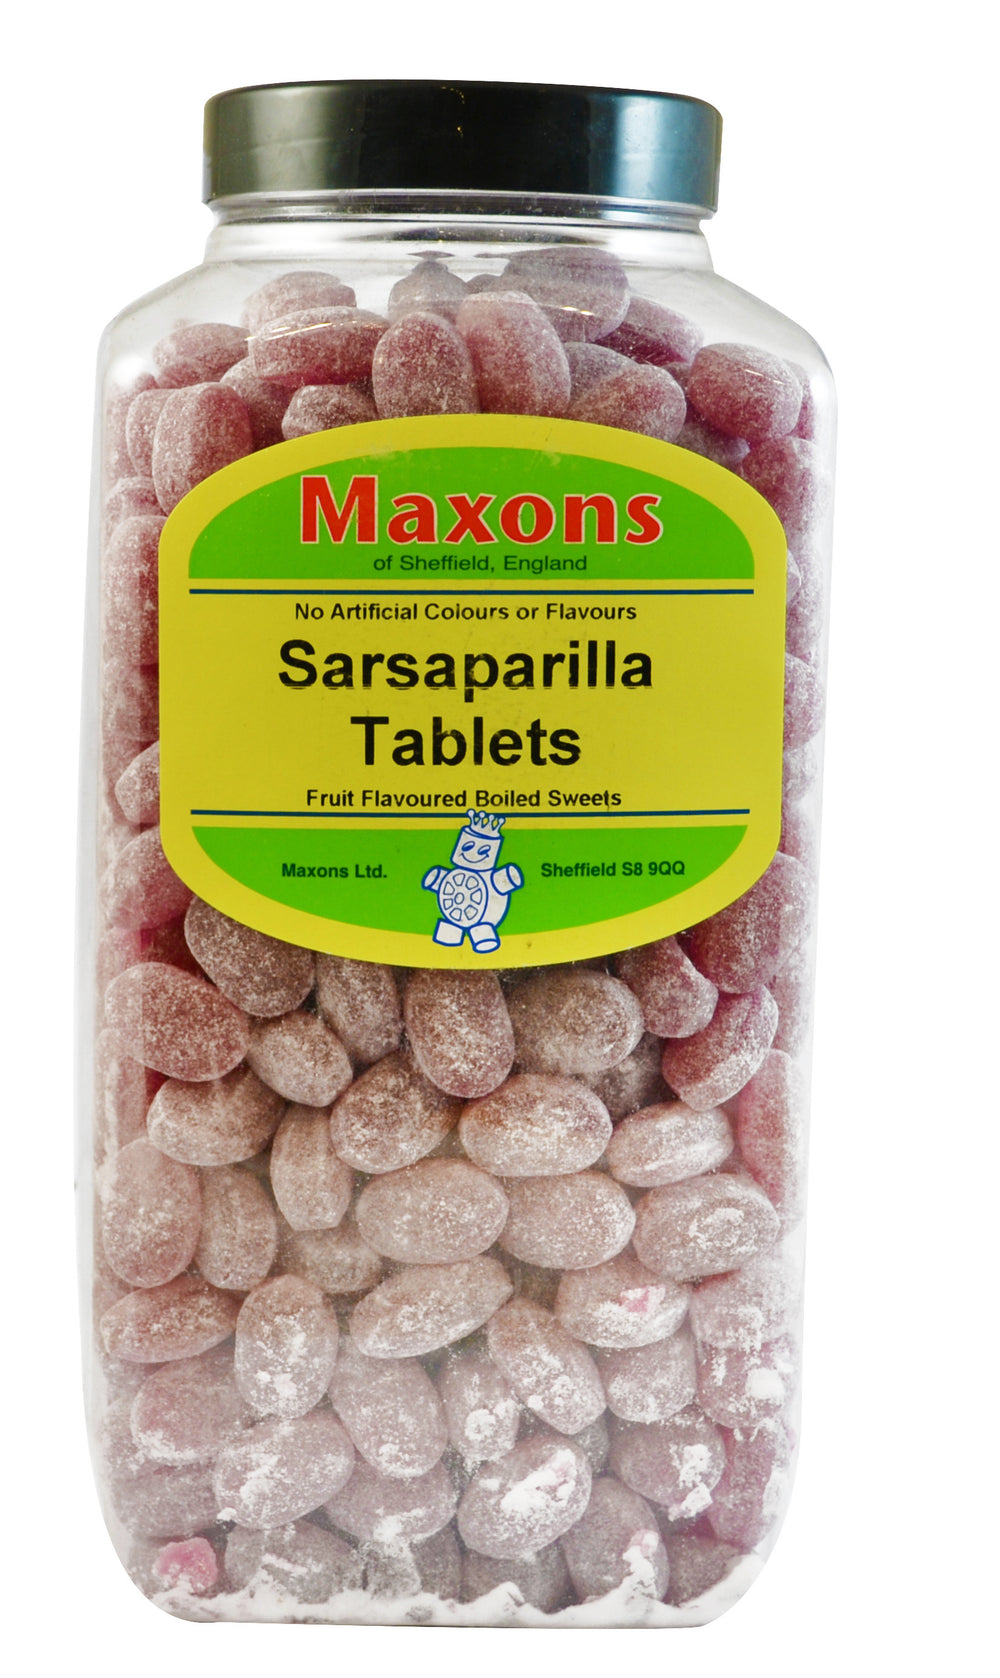 Maxons Sarsaparilla Tablets